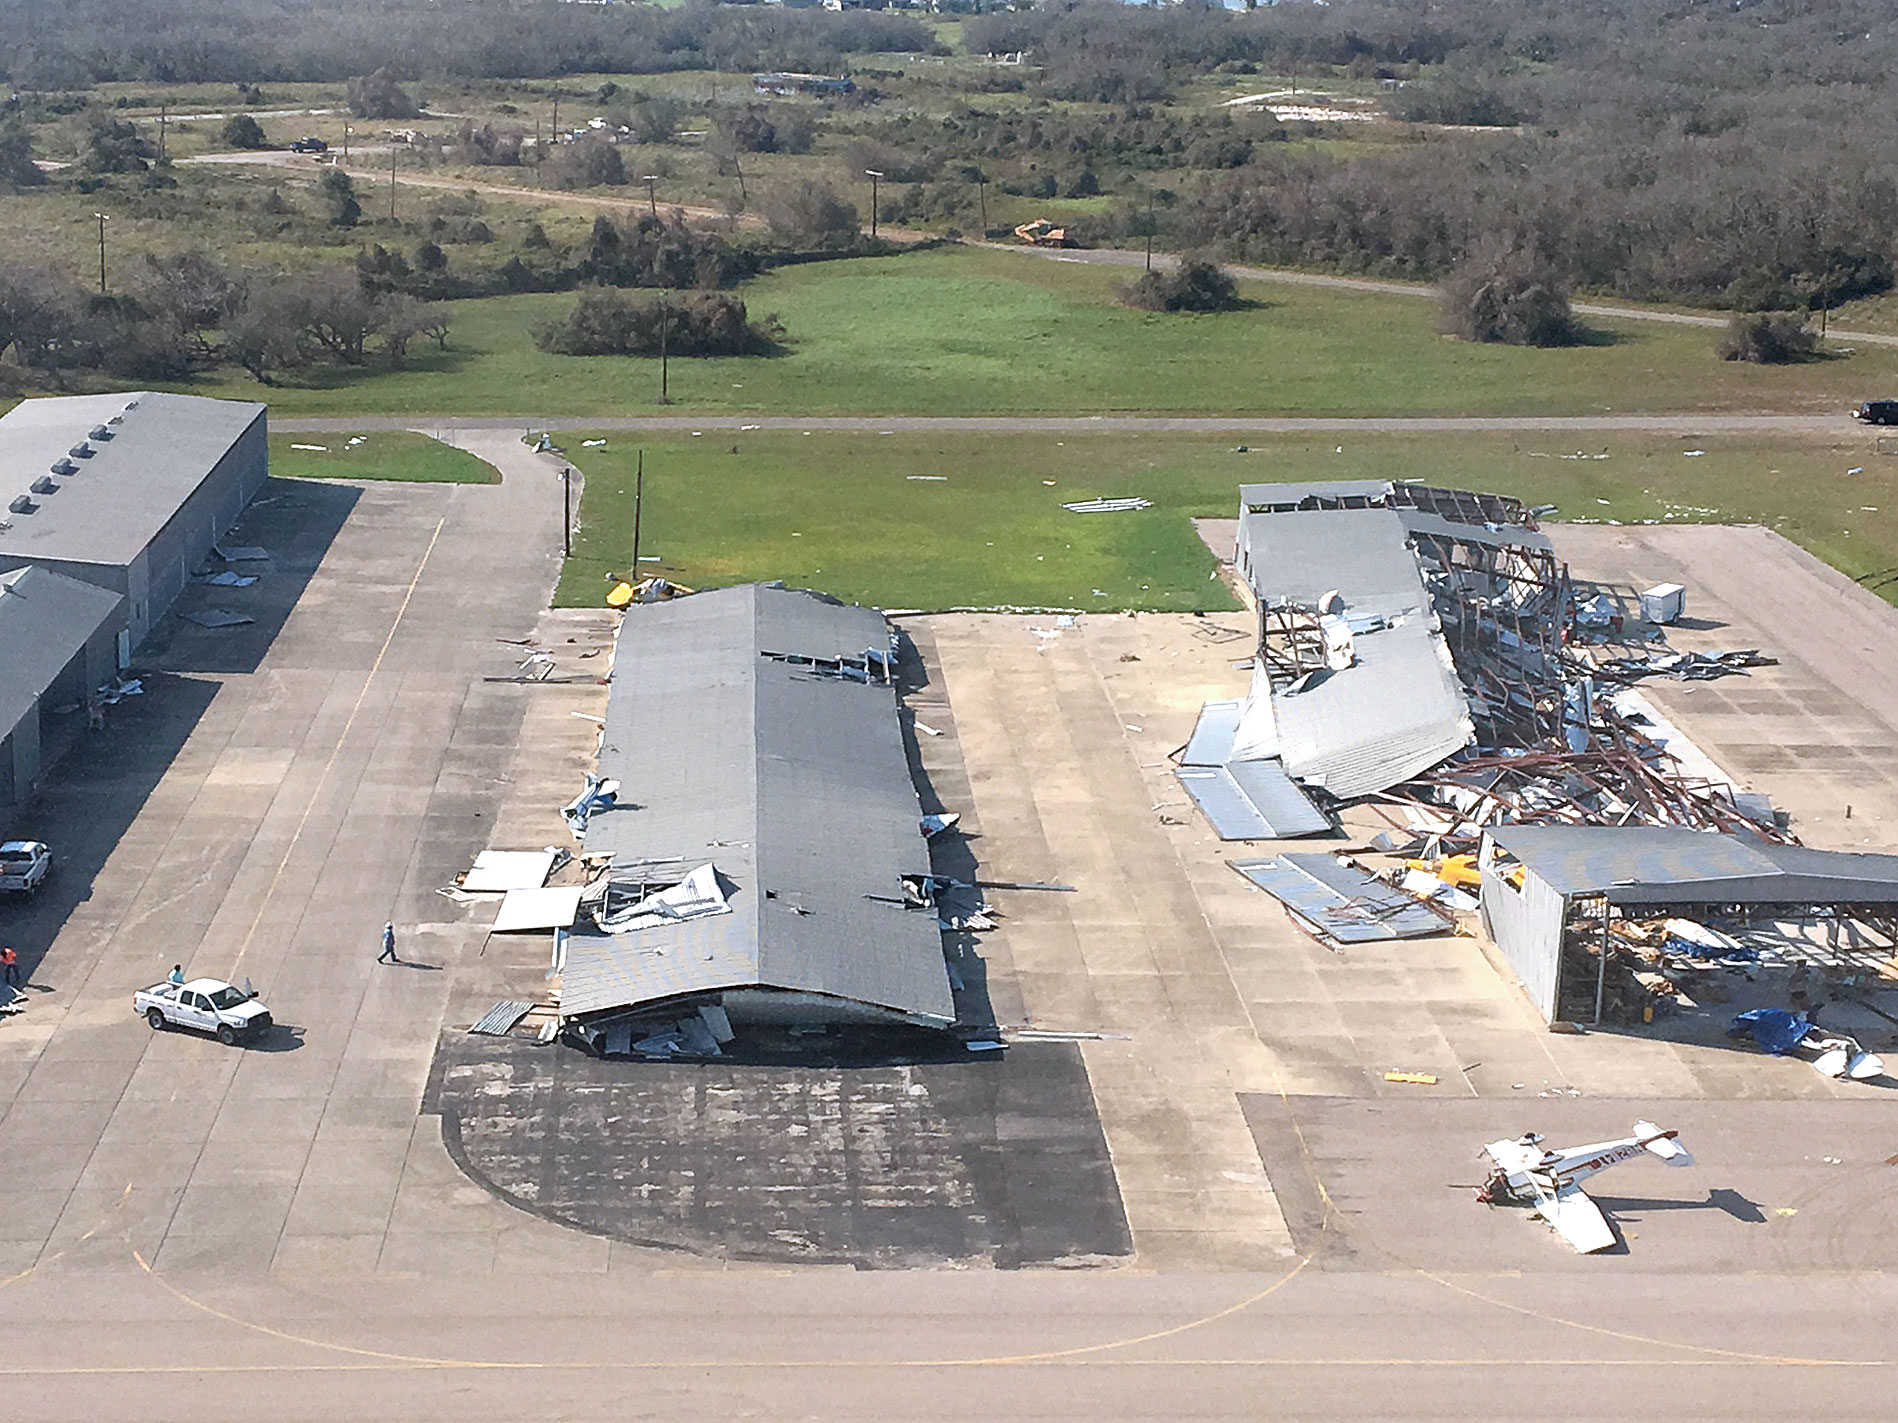 aerial view of destroyed hangar